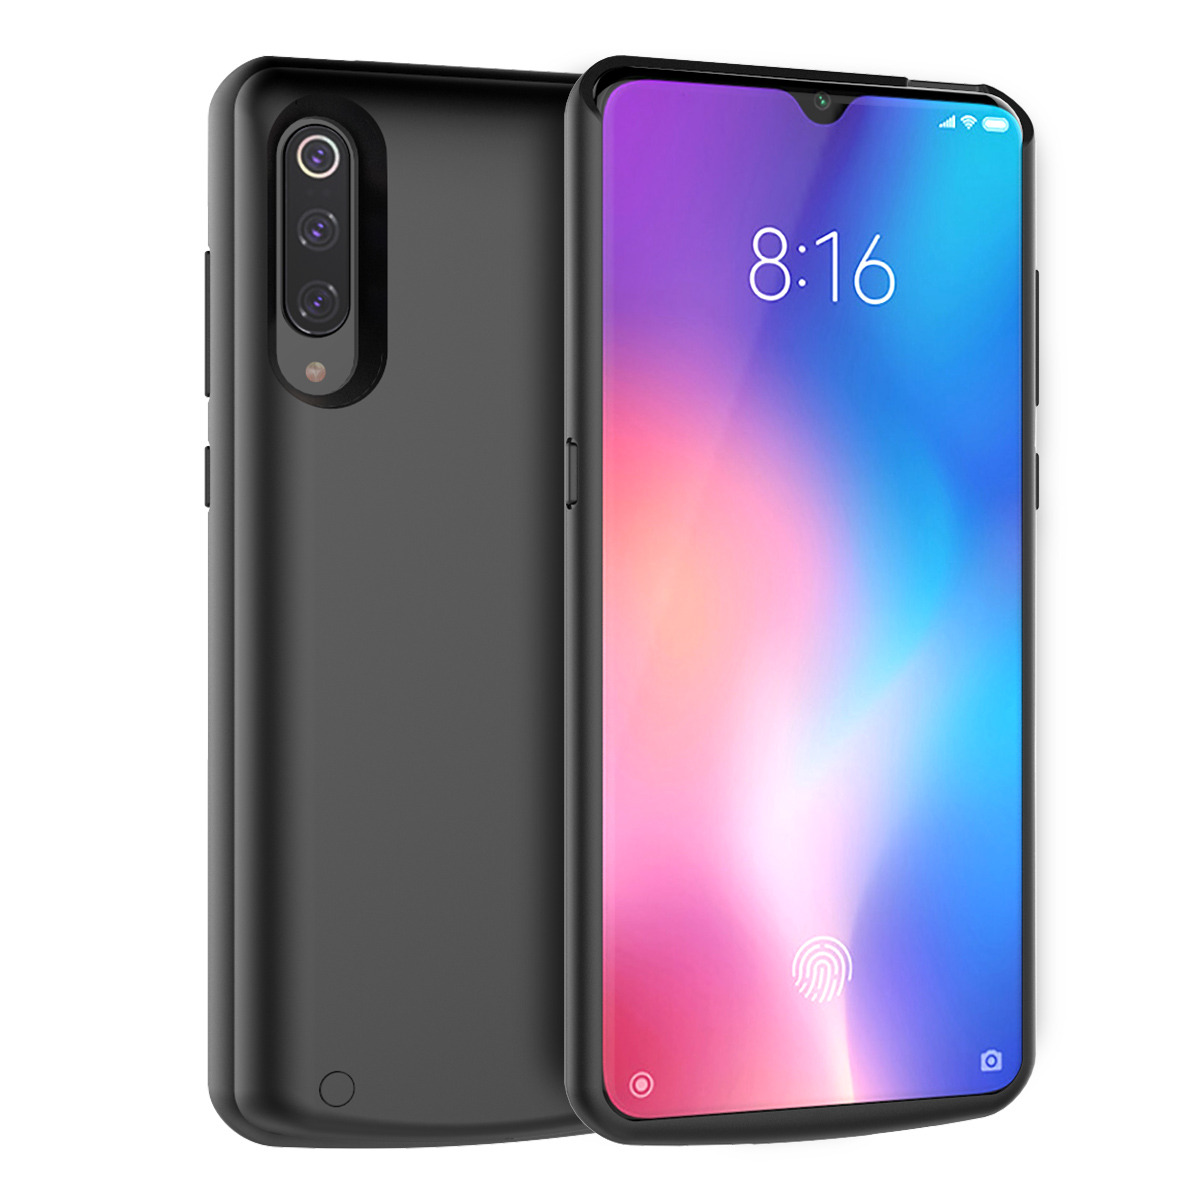 For Xiaomi Mi 9 Mi 9 SE Battery Charger Case 5000mAh Extenal Portable Slim Powerbank Charging Cover For Xiaomi Mi9 Battery Case